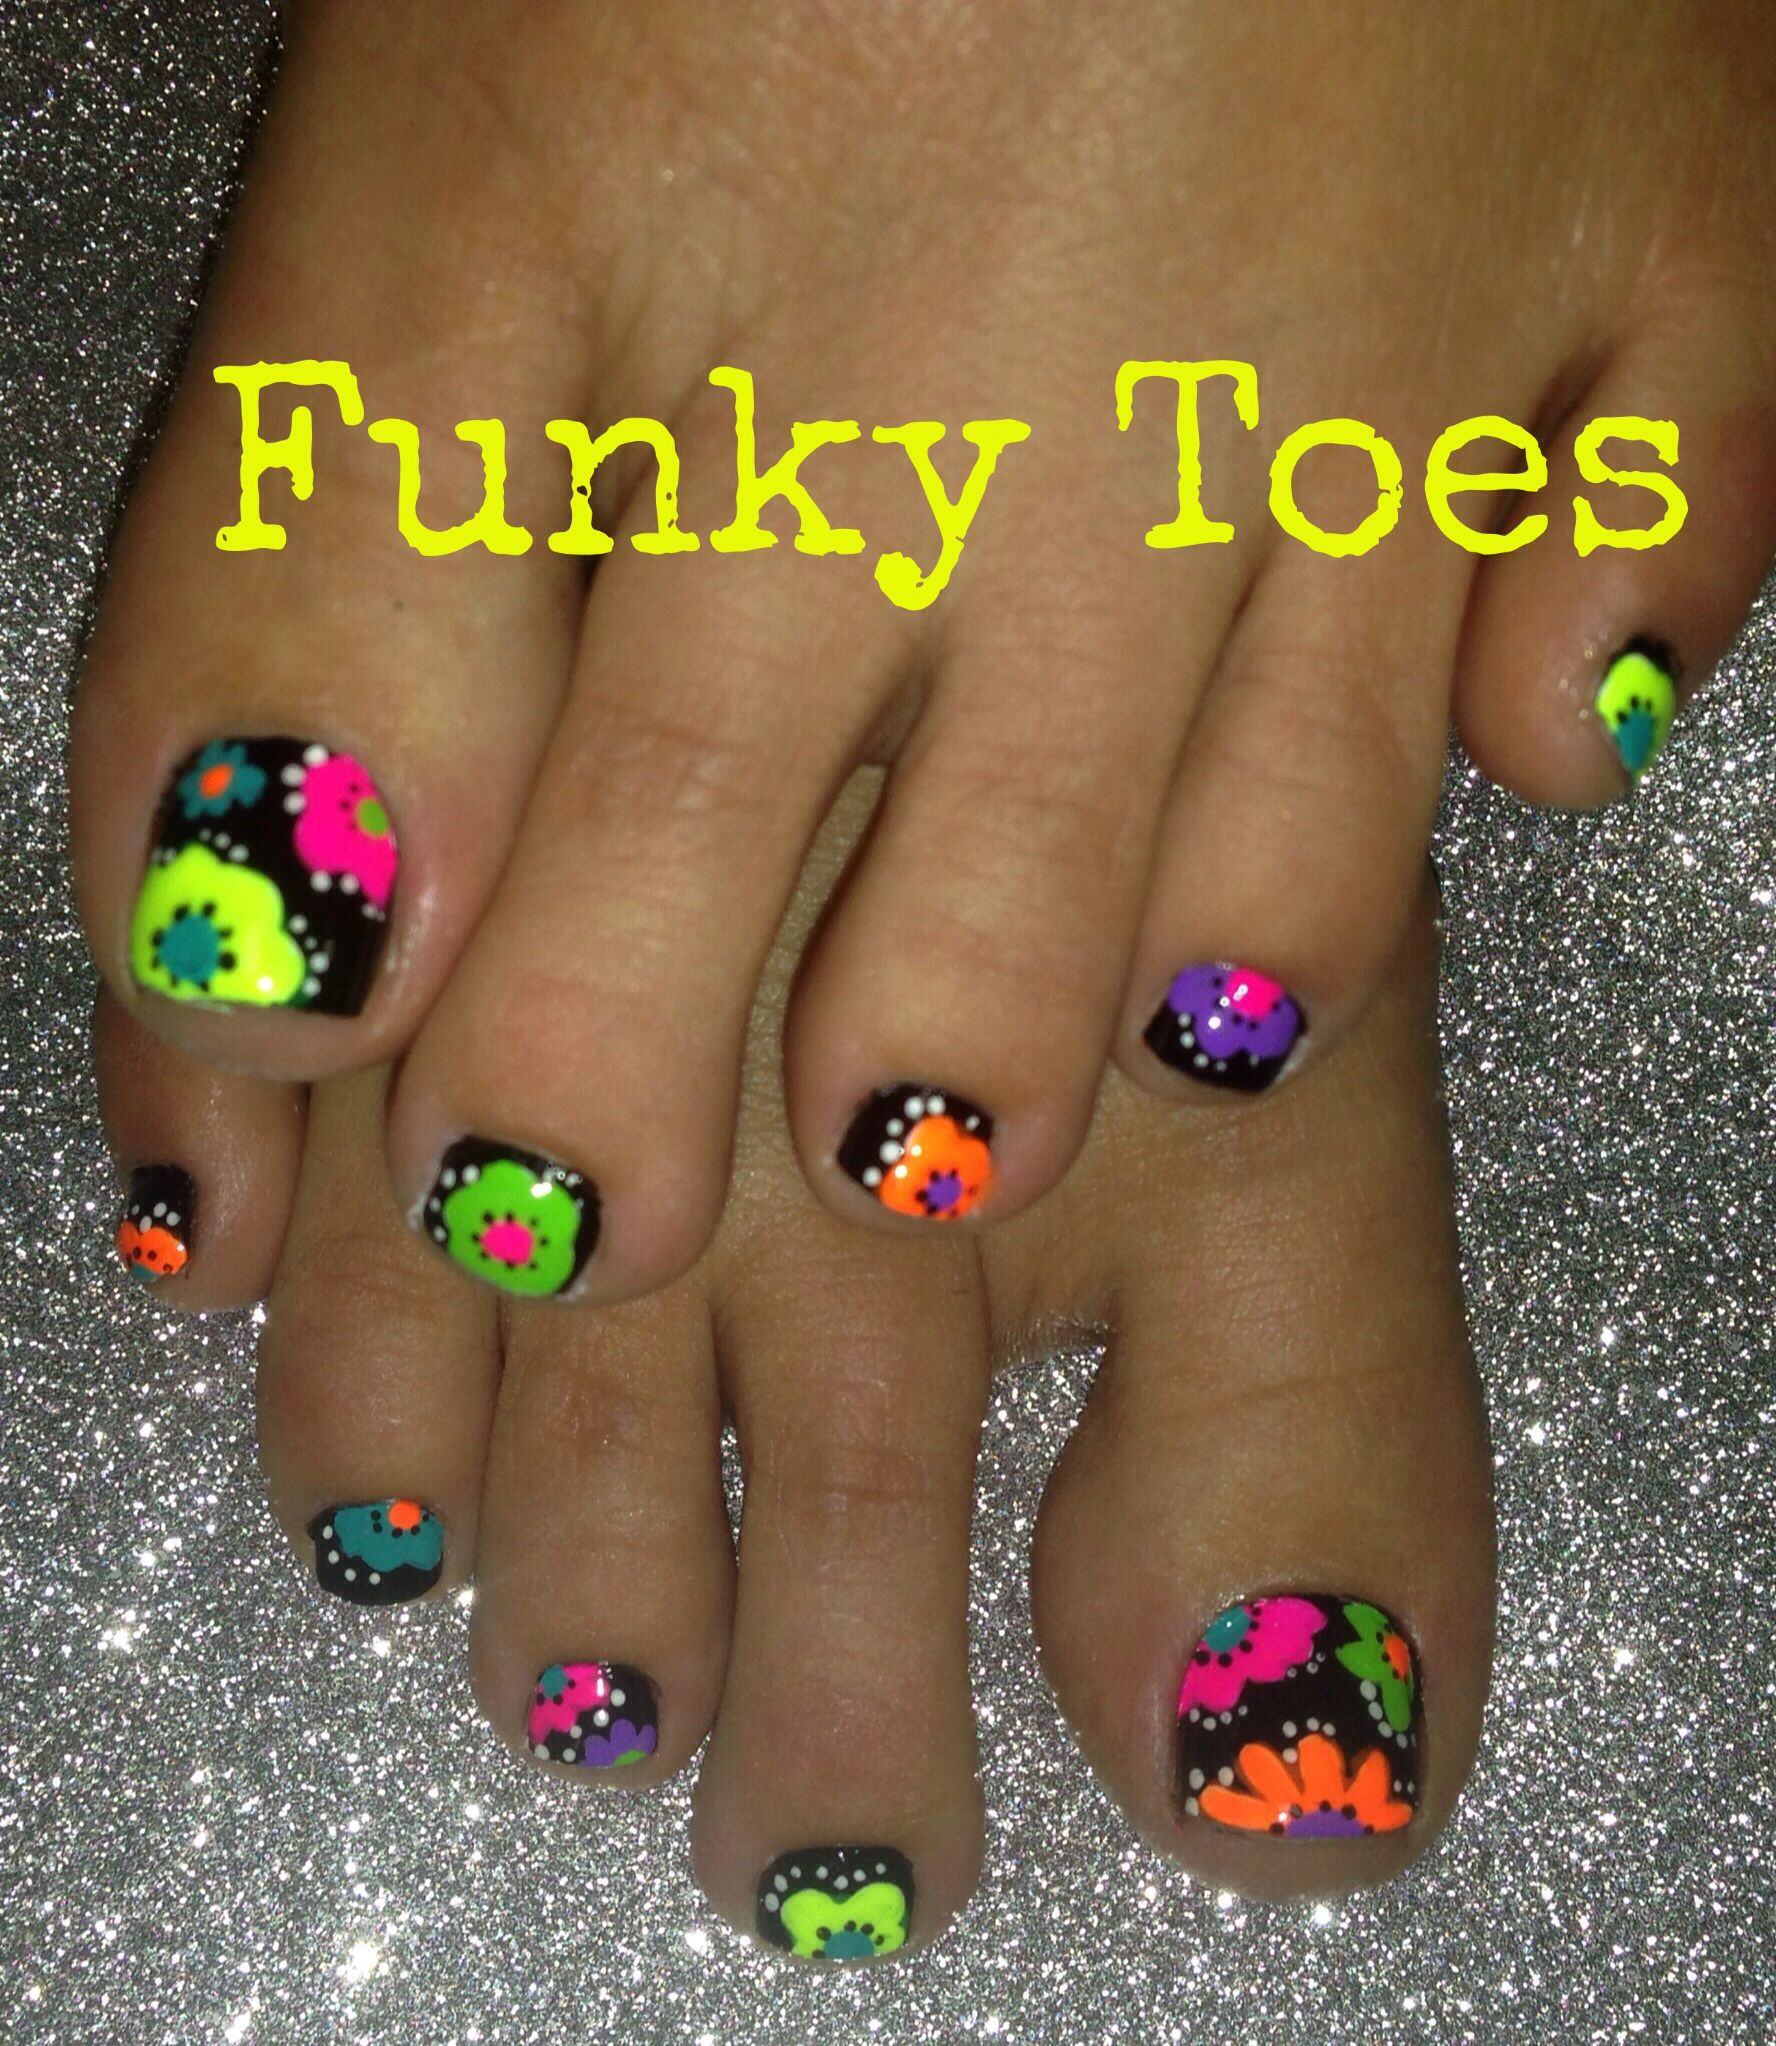 Funky Toe Nail Art 15 Cool Toe Nail Designs For Teenage Girls: Neon Toenail Art Flower Design